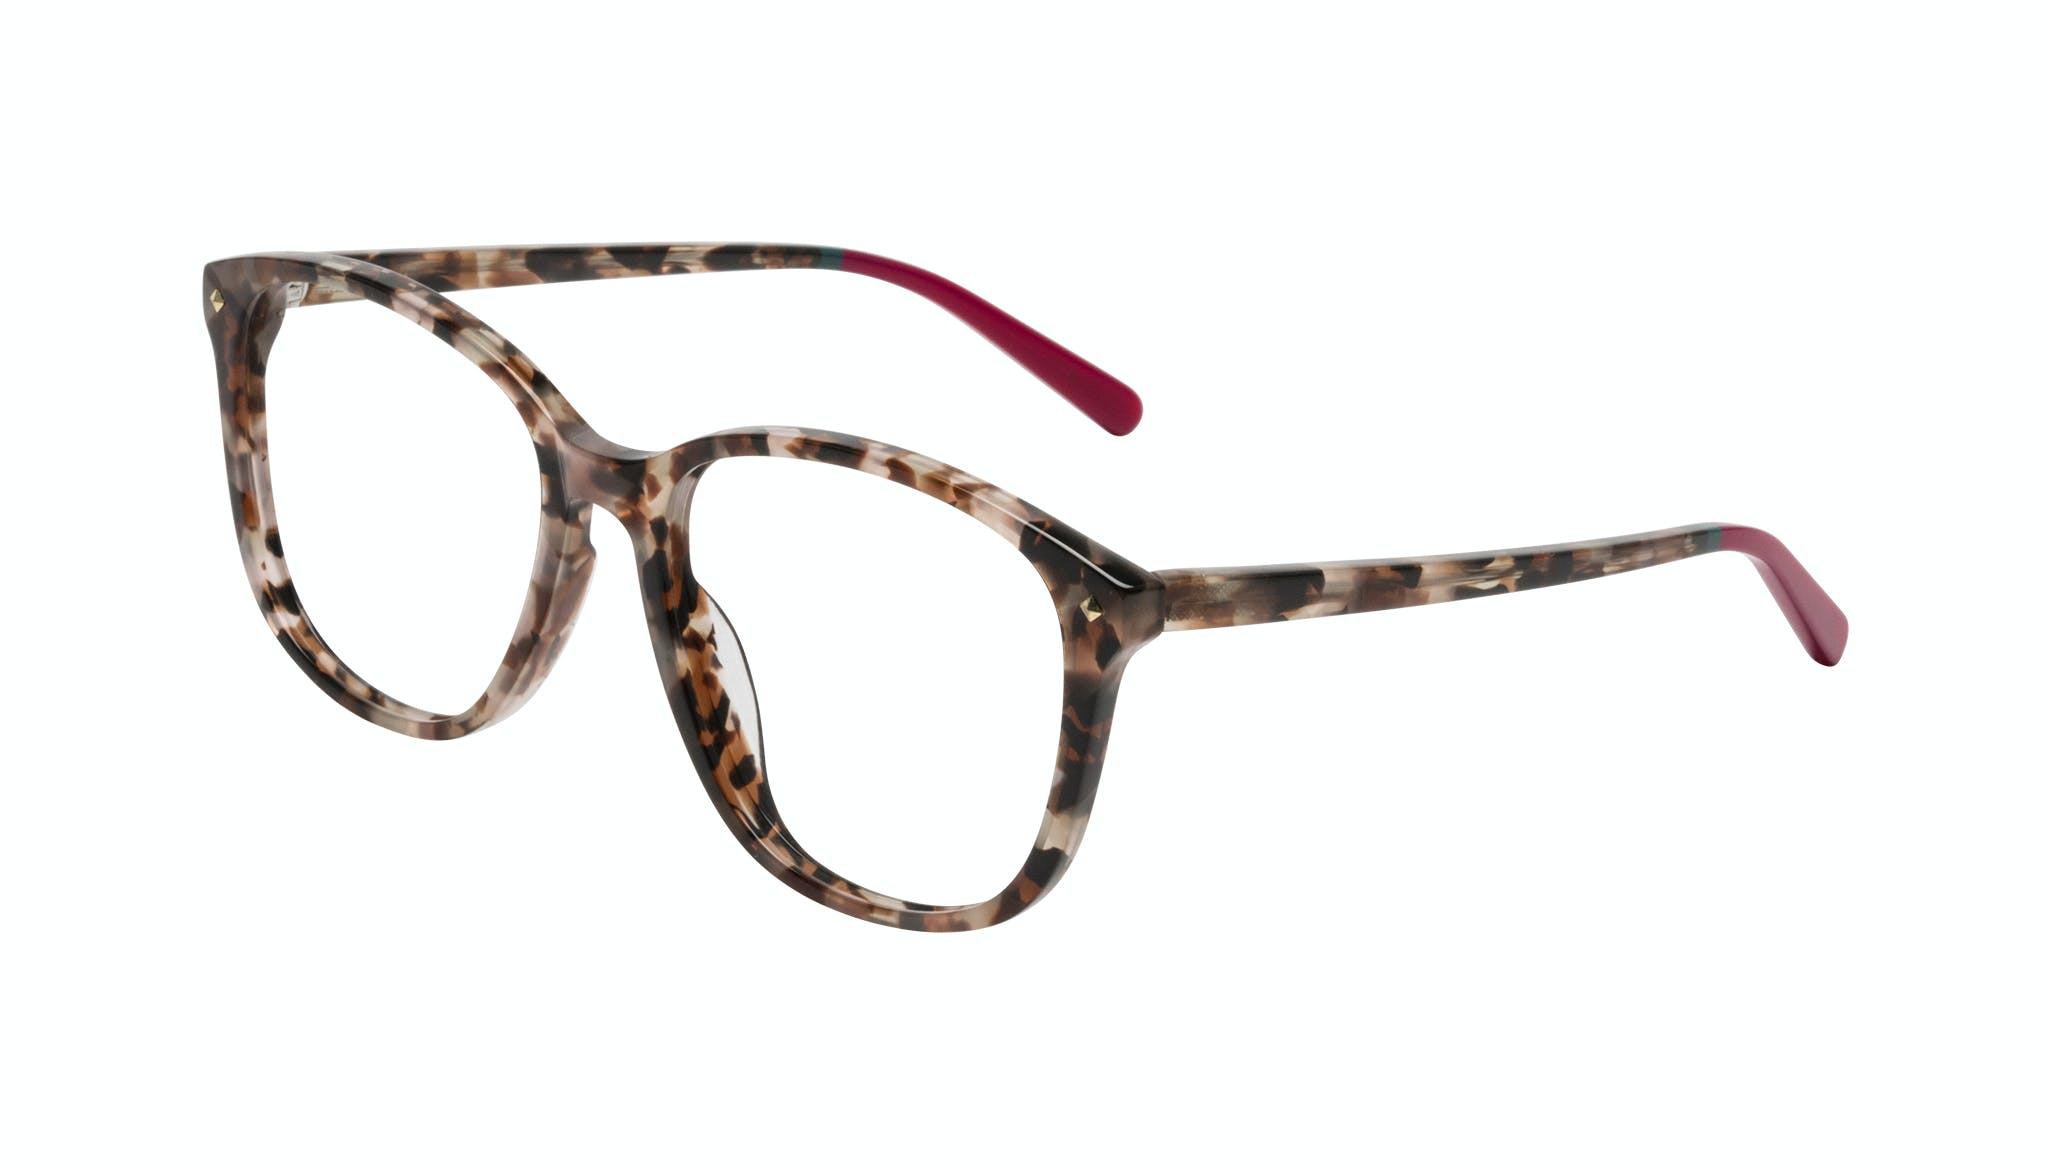 Affordable Fashion Glasses Square Eyeglasses Women Lauren Pink Tortoise Tilt